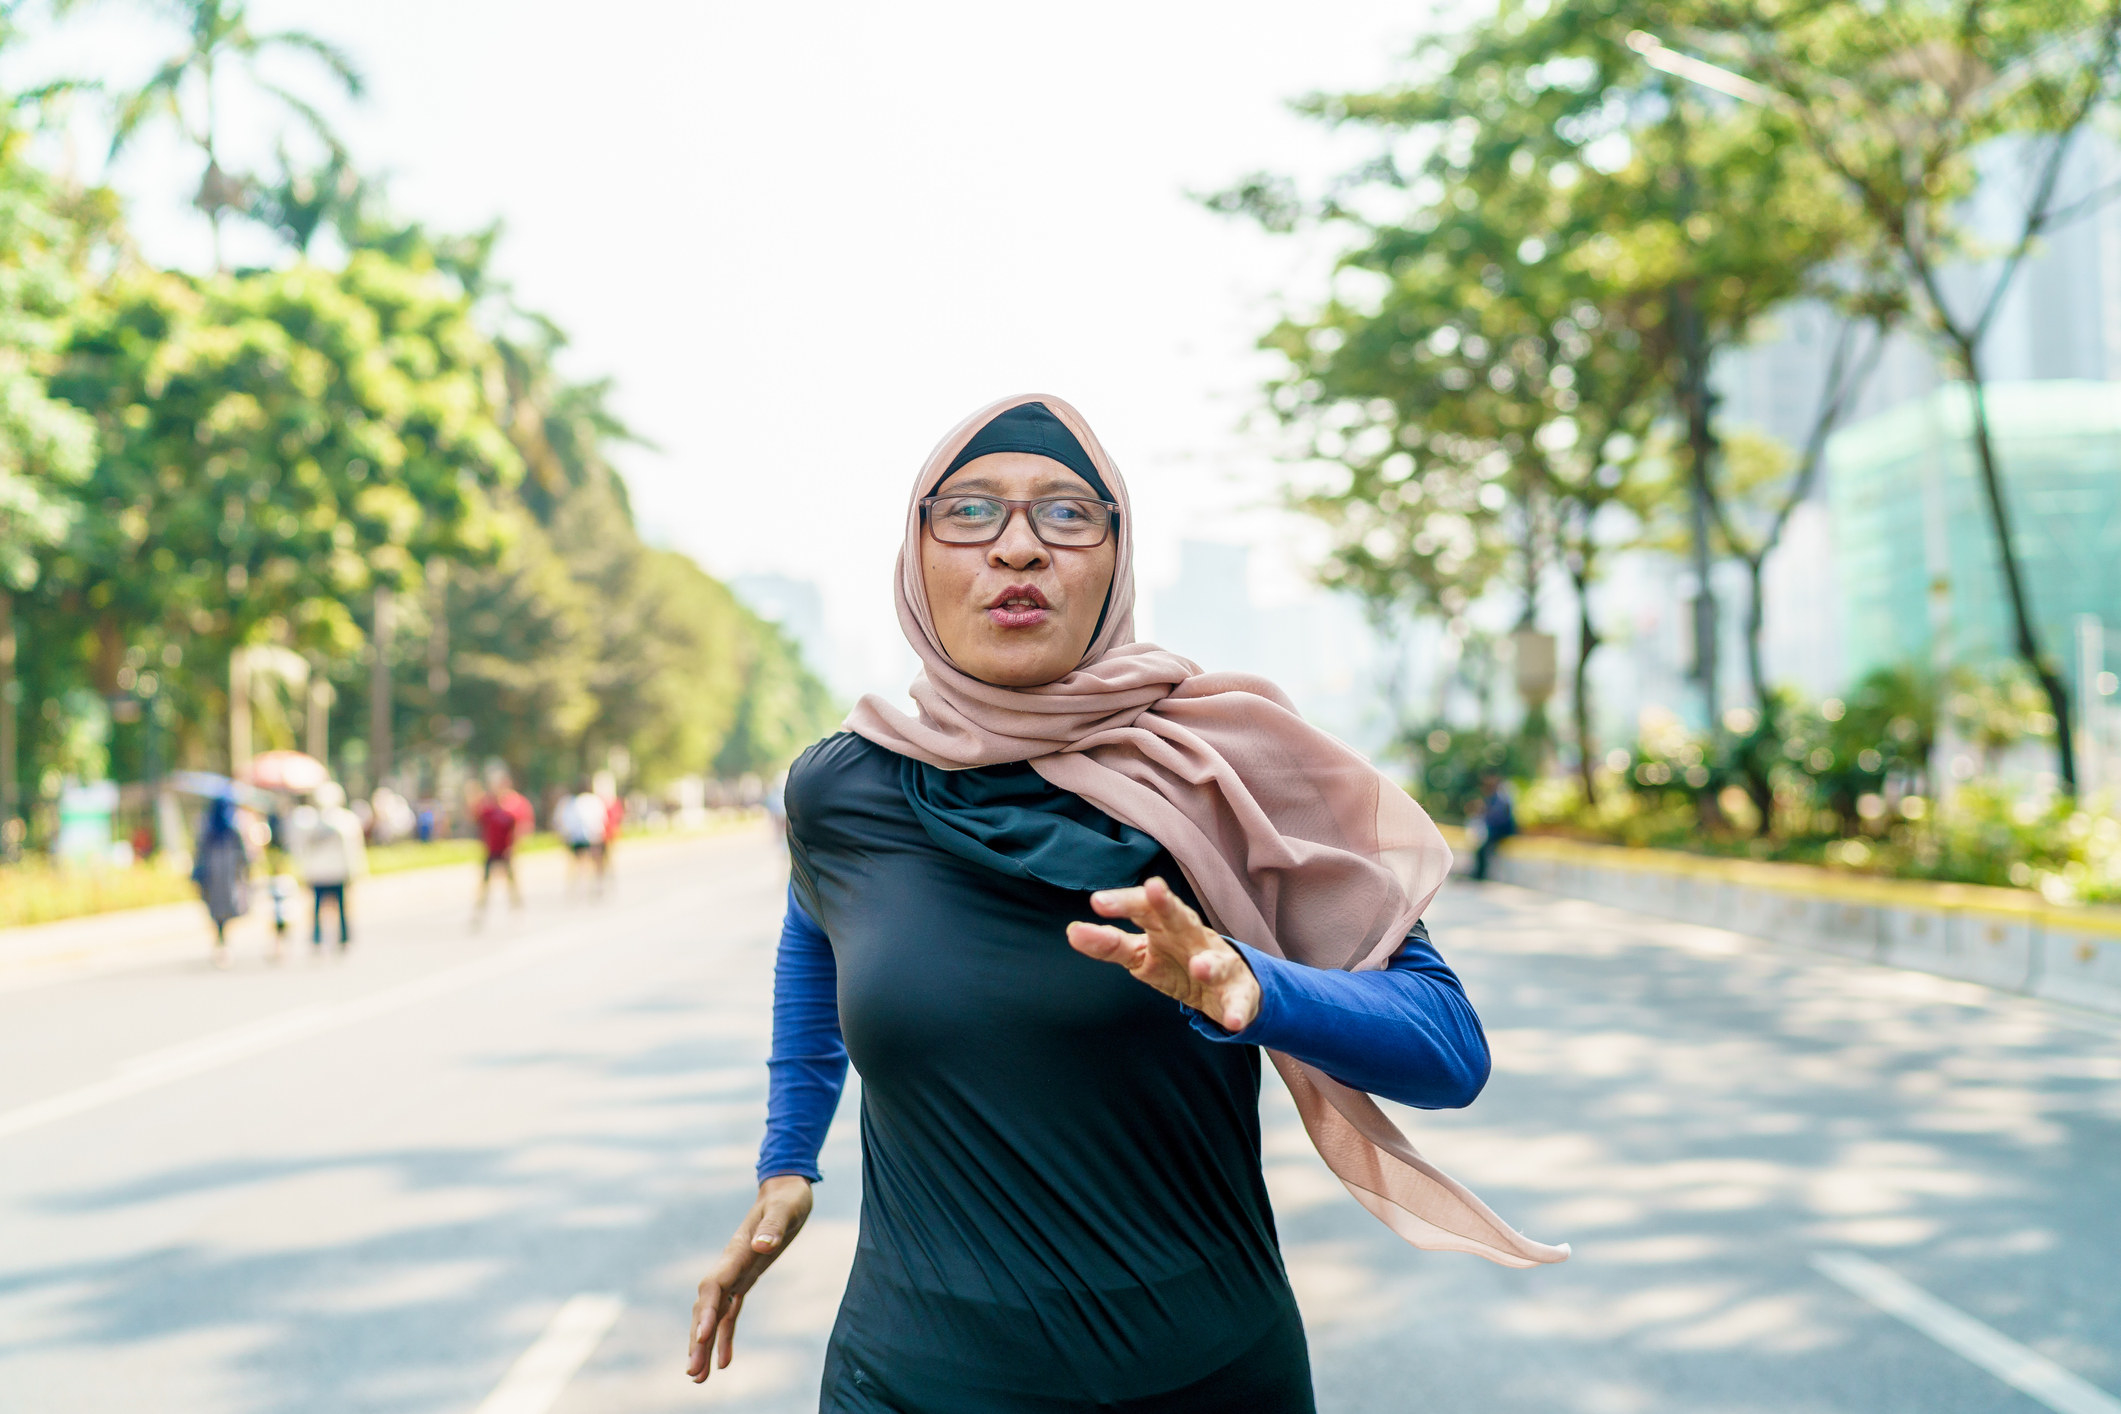 A woman running in the street for exercise